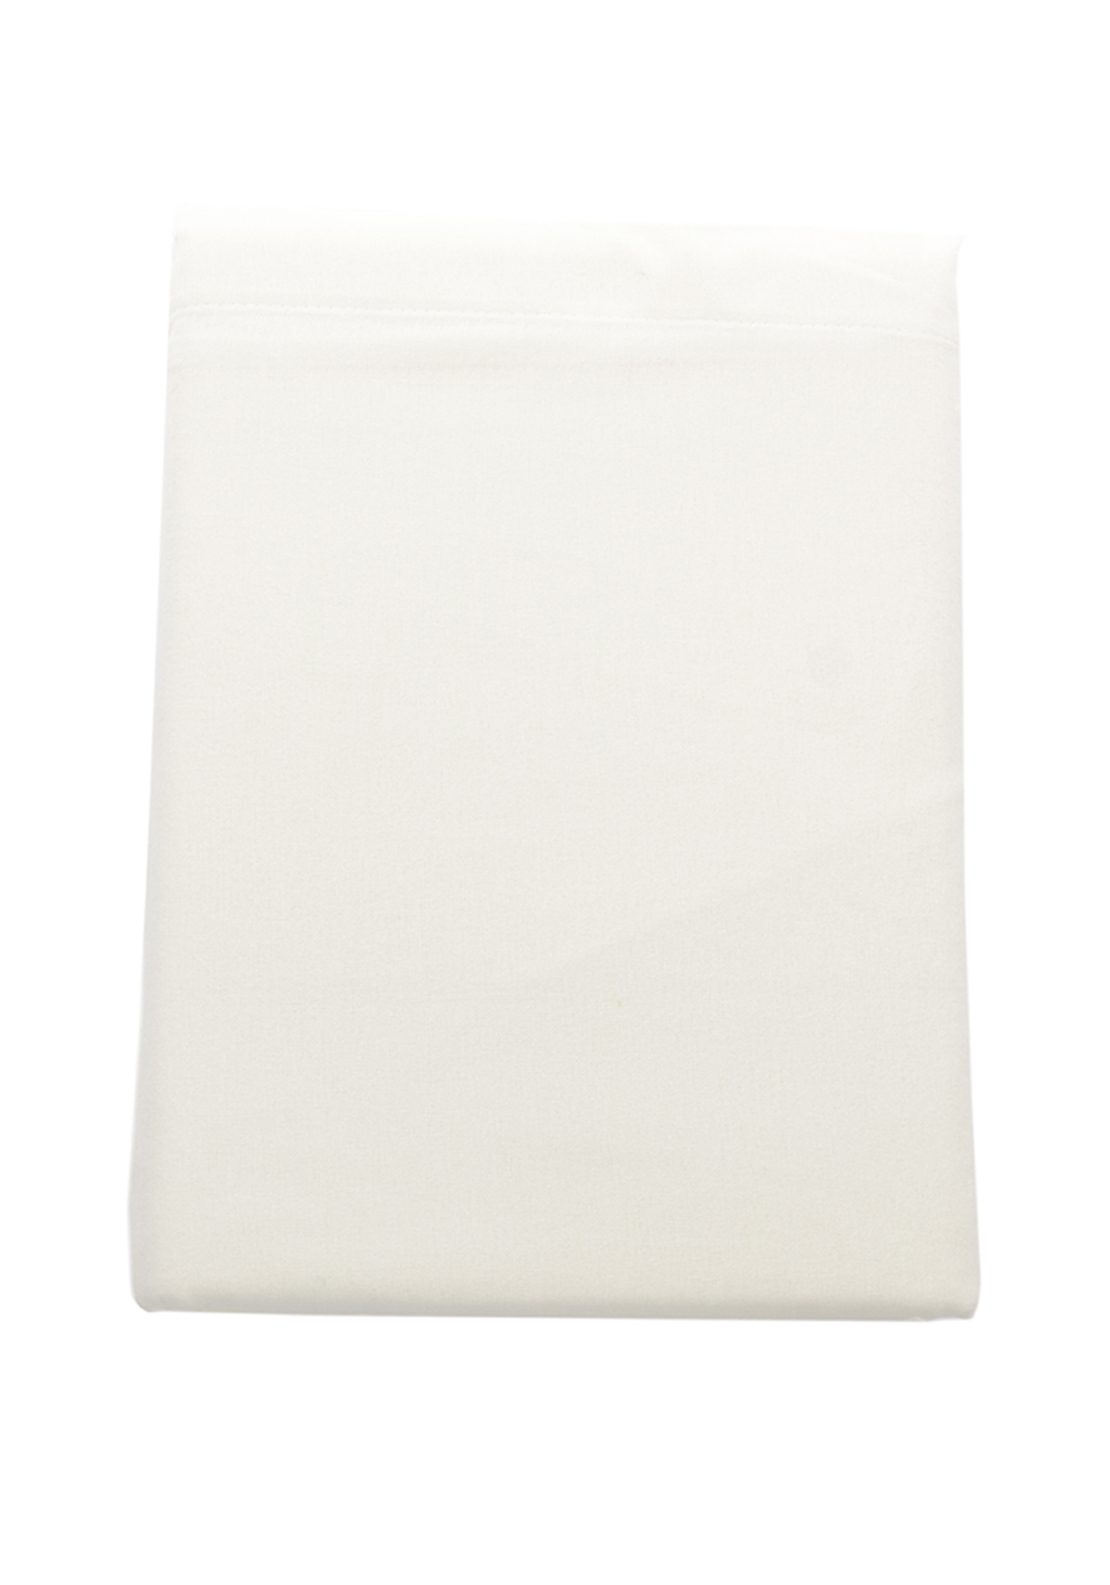 Everwarm Cotton Flannel Sheet Set, Cream